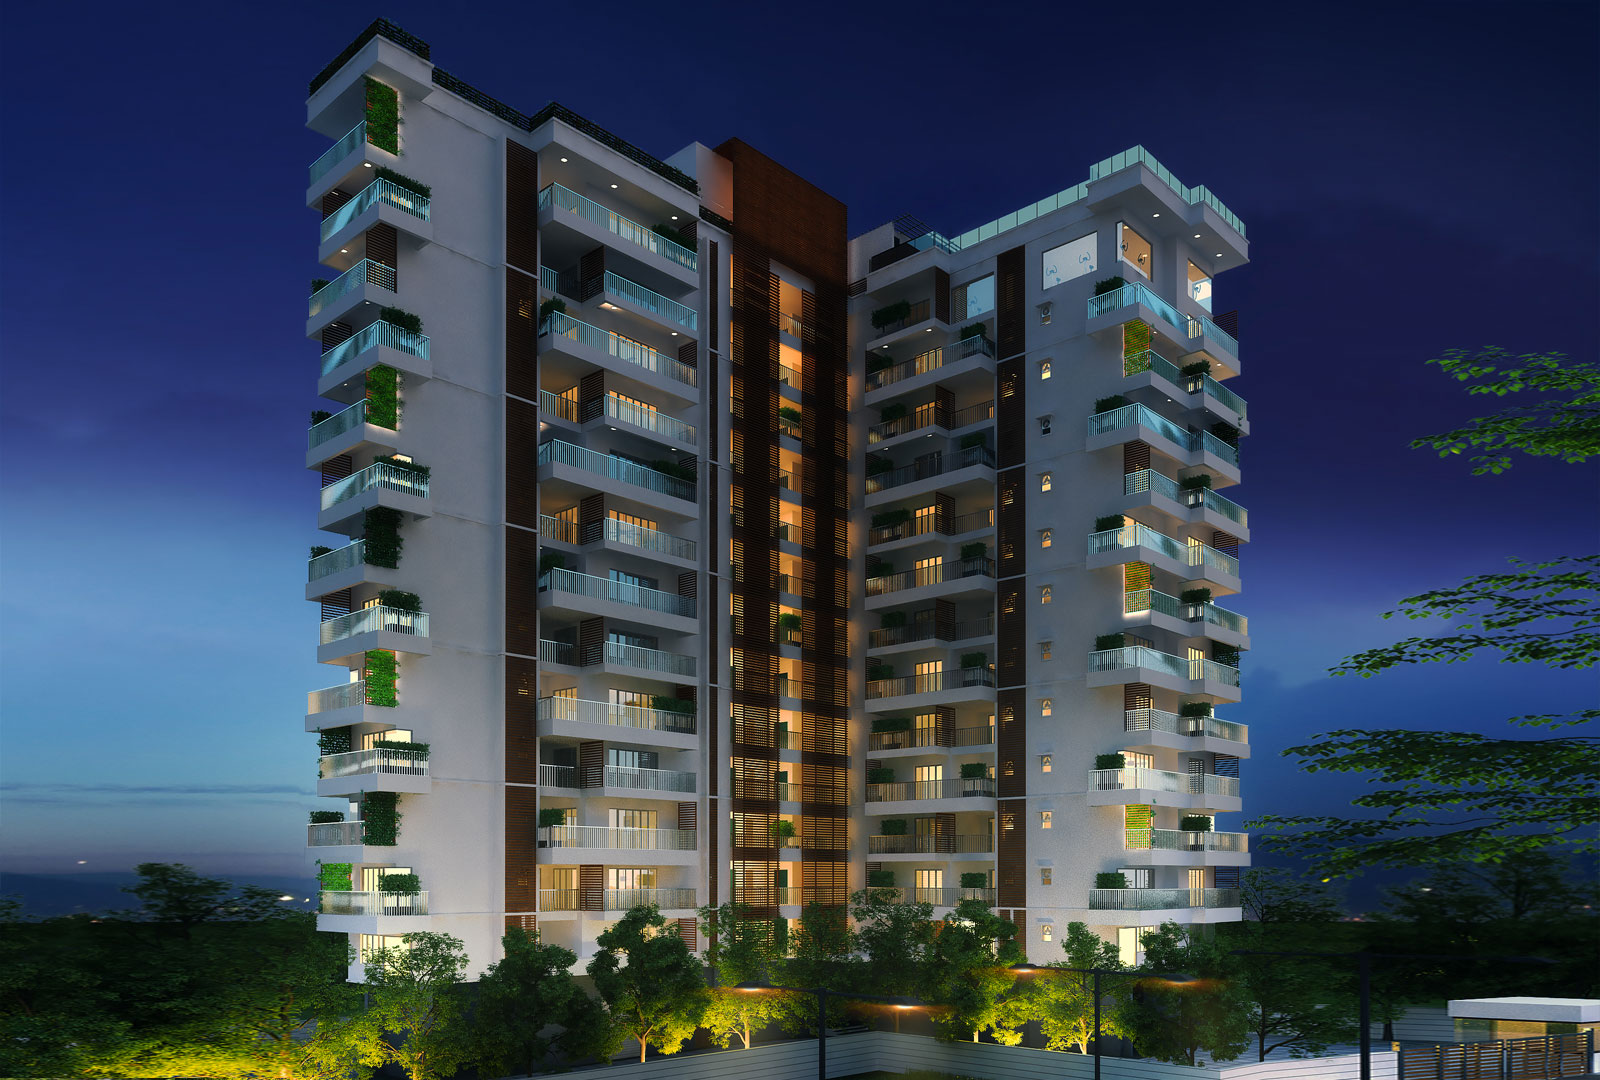 luxury apartments exterior. media luxury apartments exterior brilliant ideas n throughout decor  new